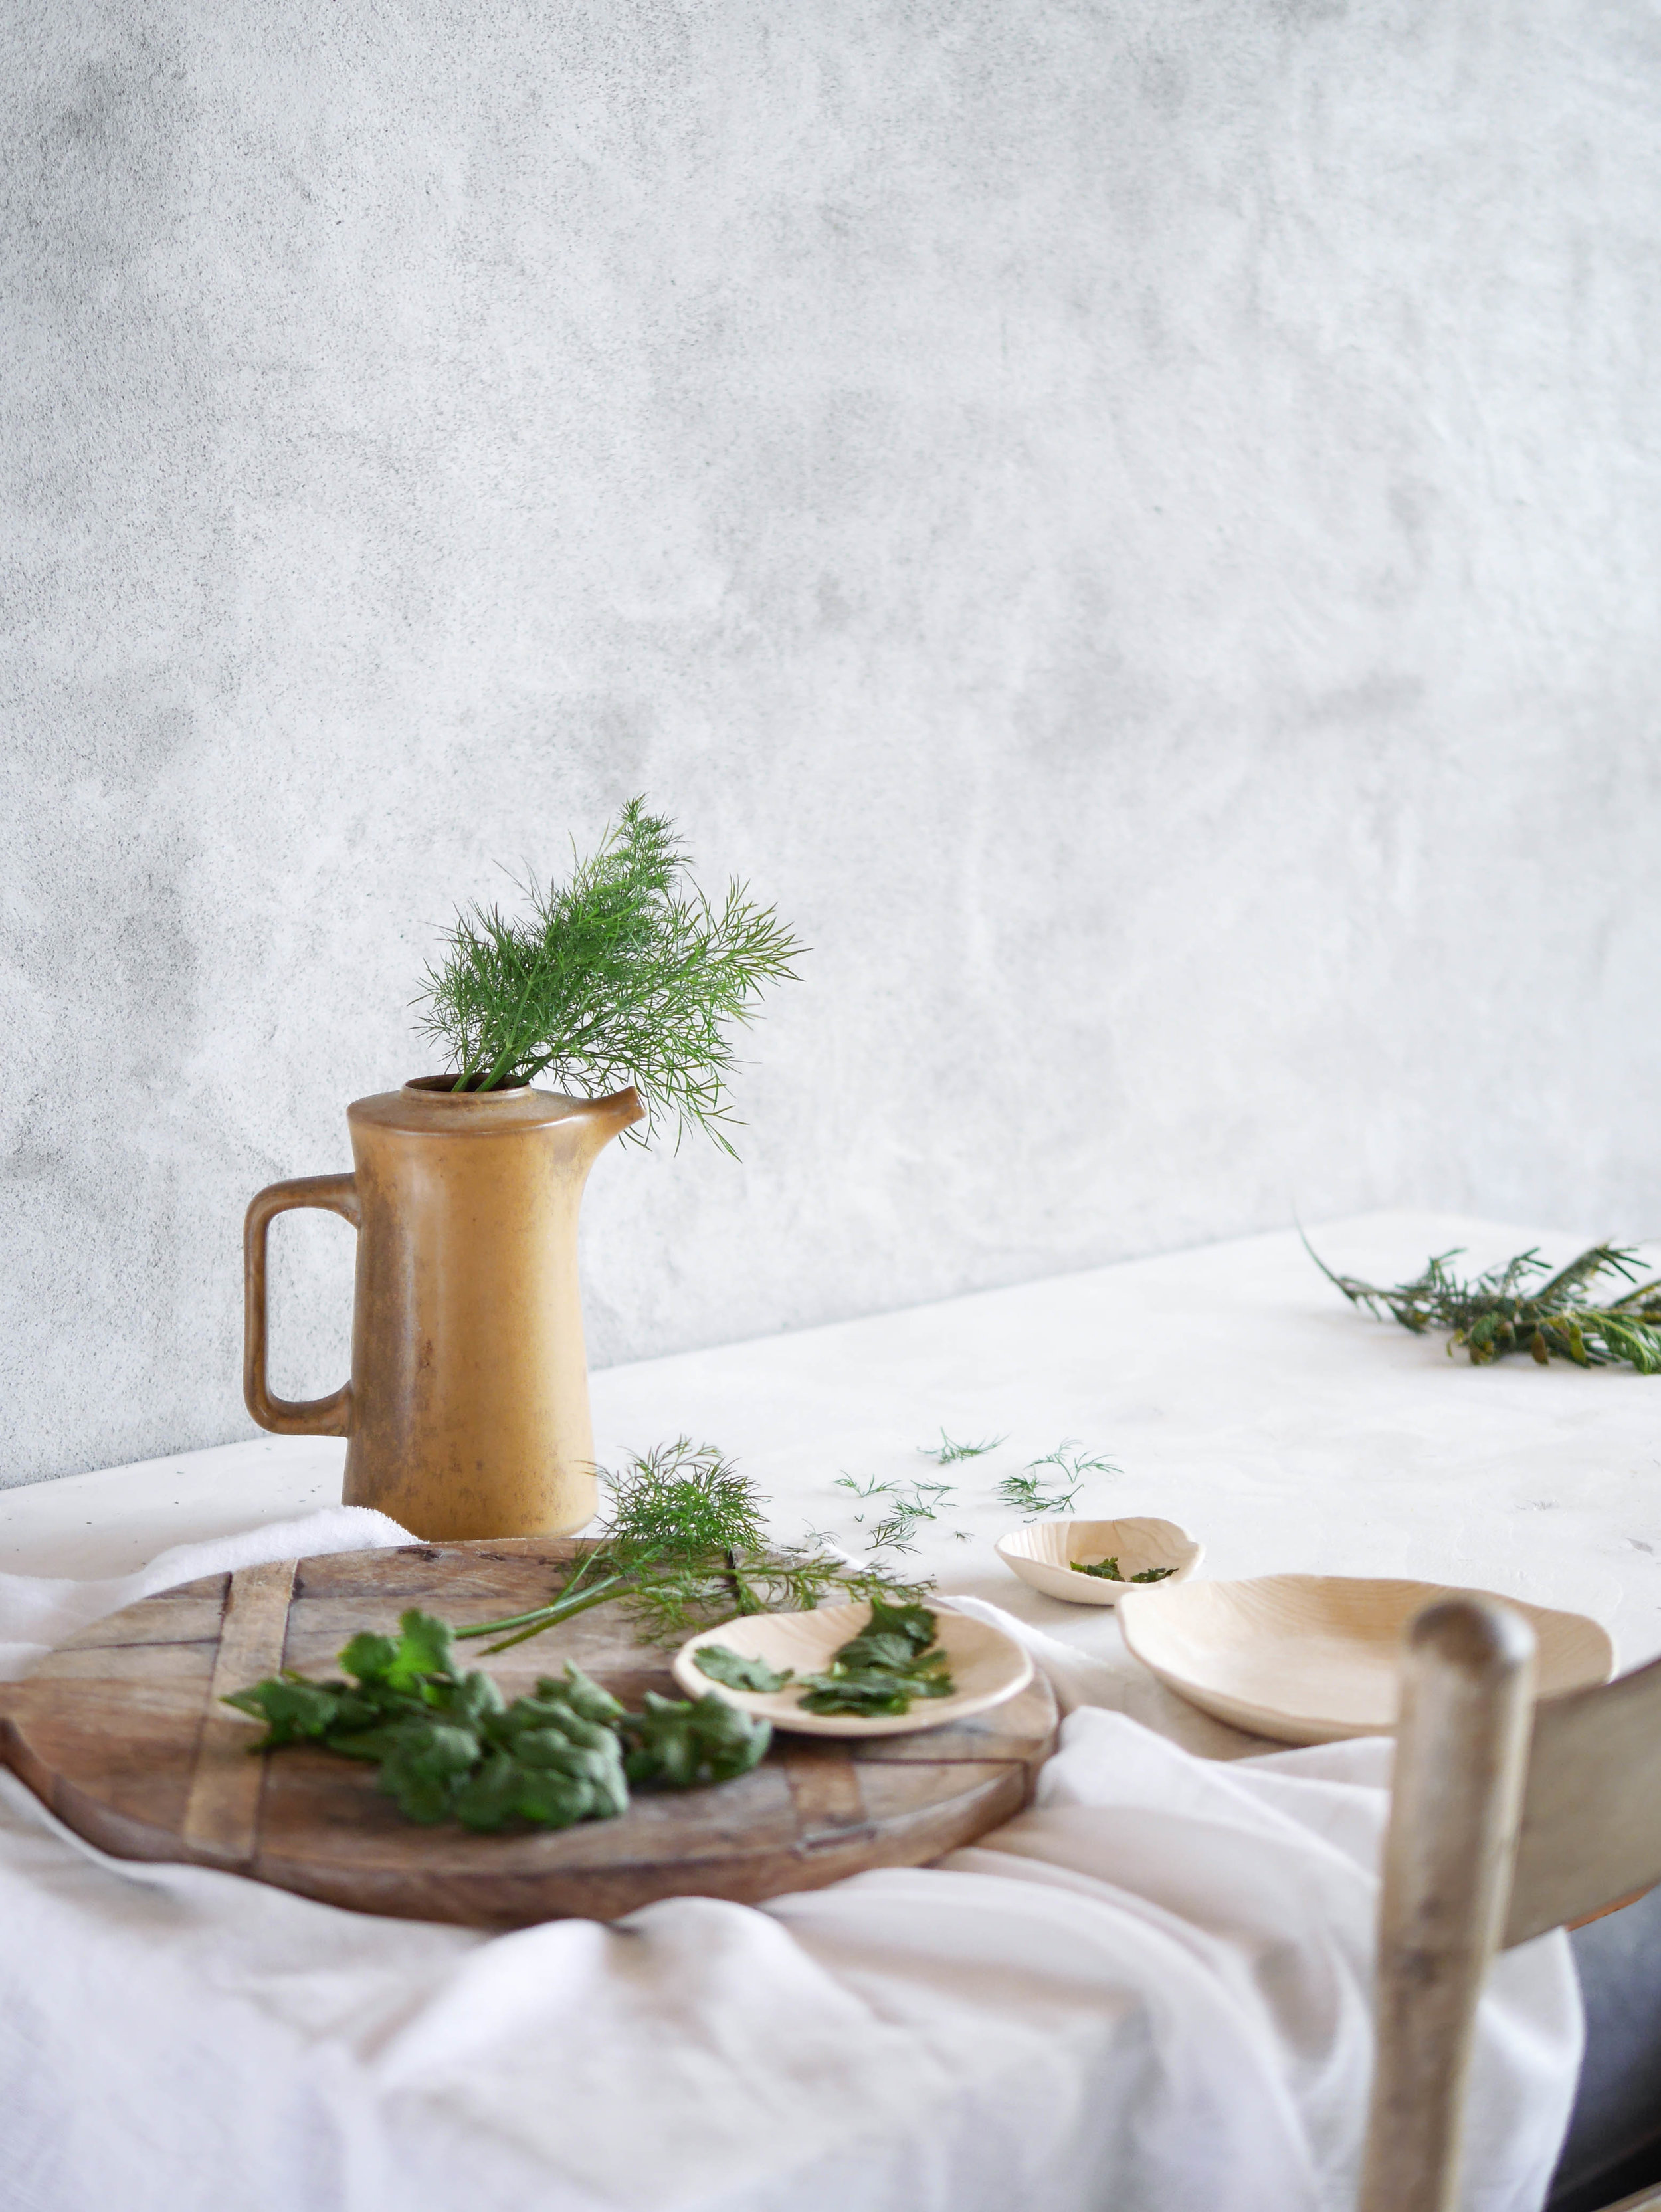 The simplicity of dishes and herbs is celebrated here, with simple flowing linens and a gently textured wall giving these elements the space they need. By  @underthekowhai